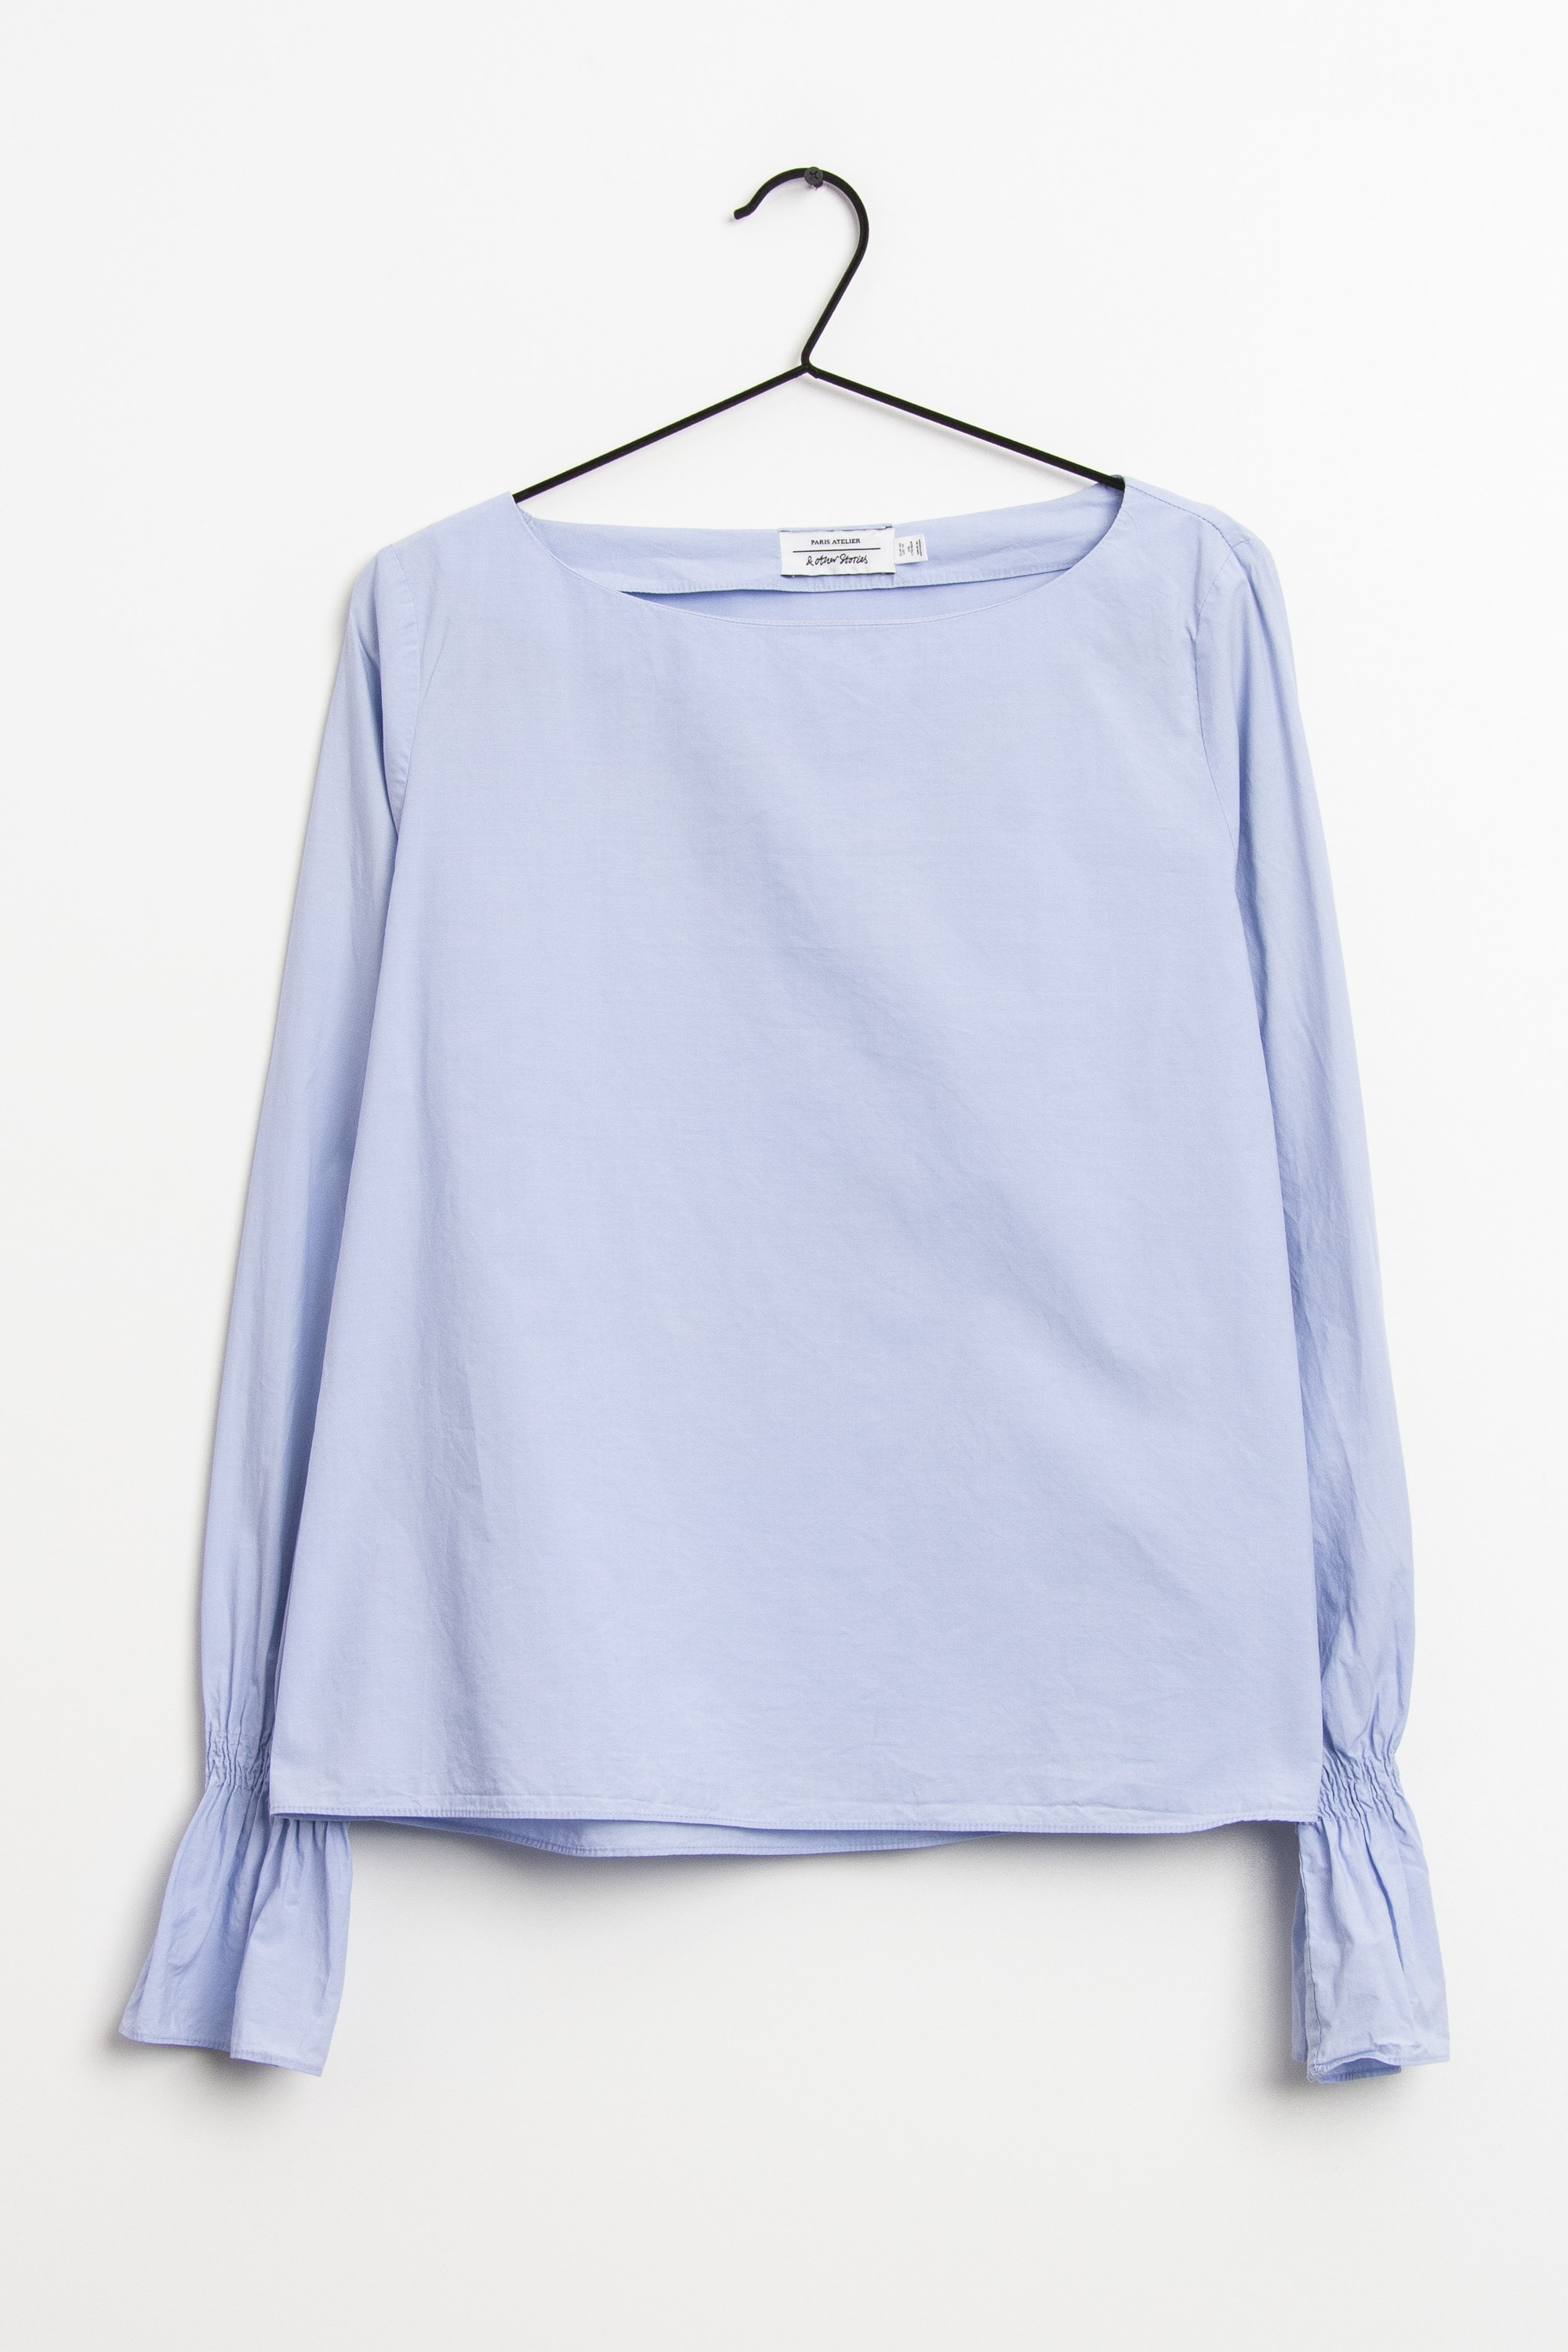 & other stories Bluse Blau Gr.40